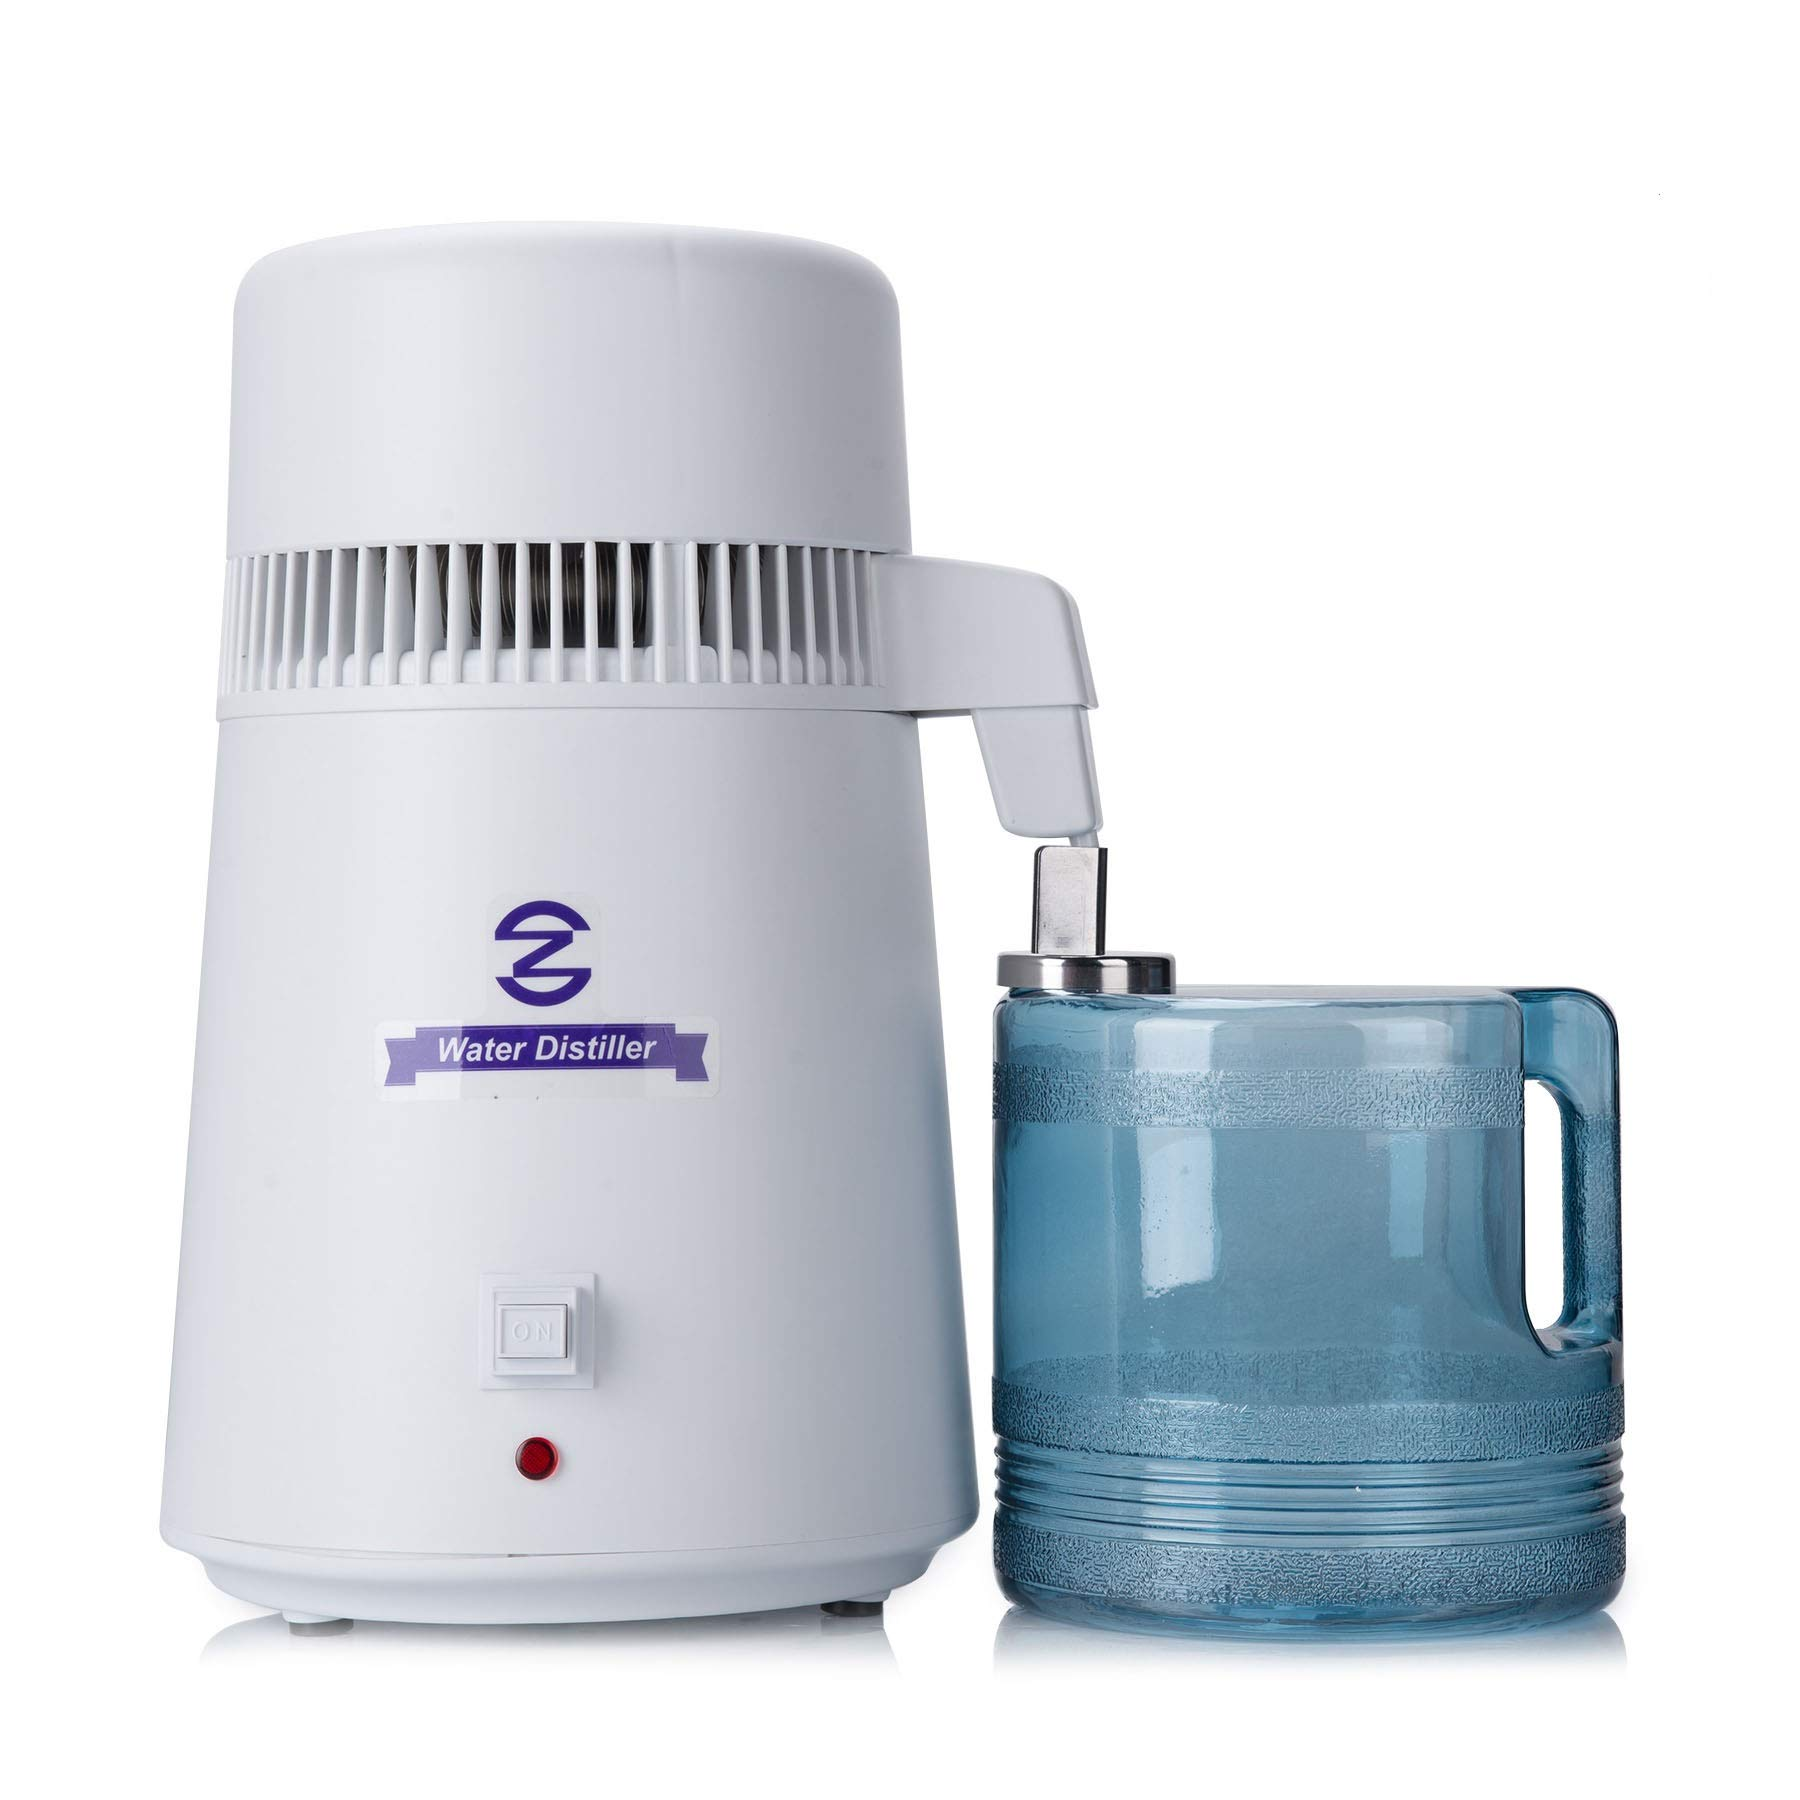 CO-Z 4 Liter Water Distiller, Distilling Pure Water Machine for Home Countertop Table Desktop, 4L Distilled Water Making Machine, FDA Approved Water Purifier to Make Clean Water for Home Use